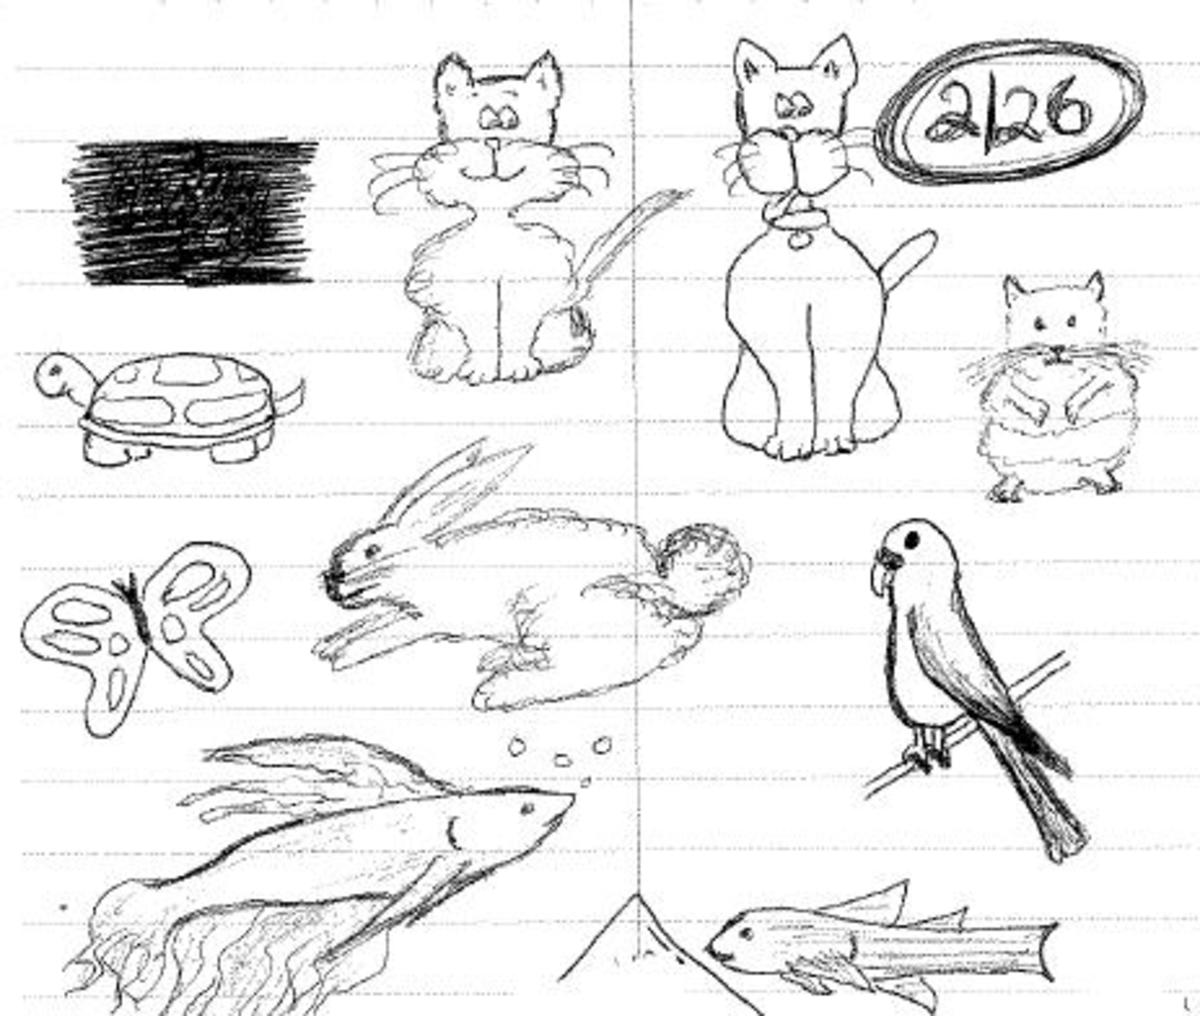 How to Become a Pro-Doodler in Your Spare Time